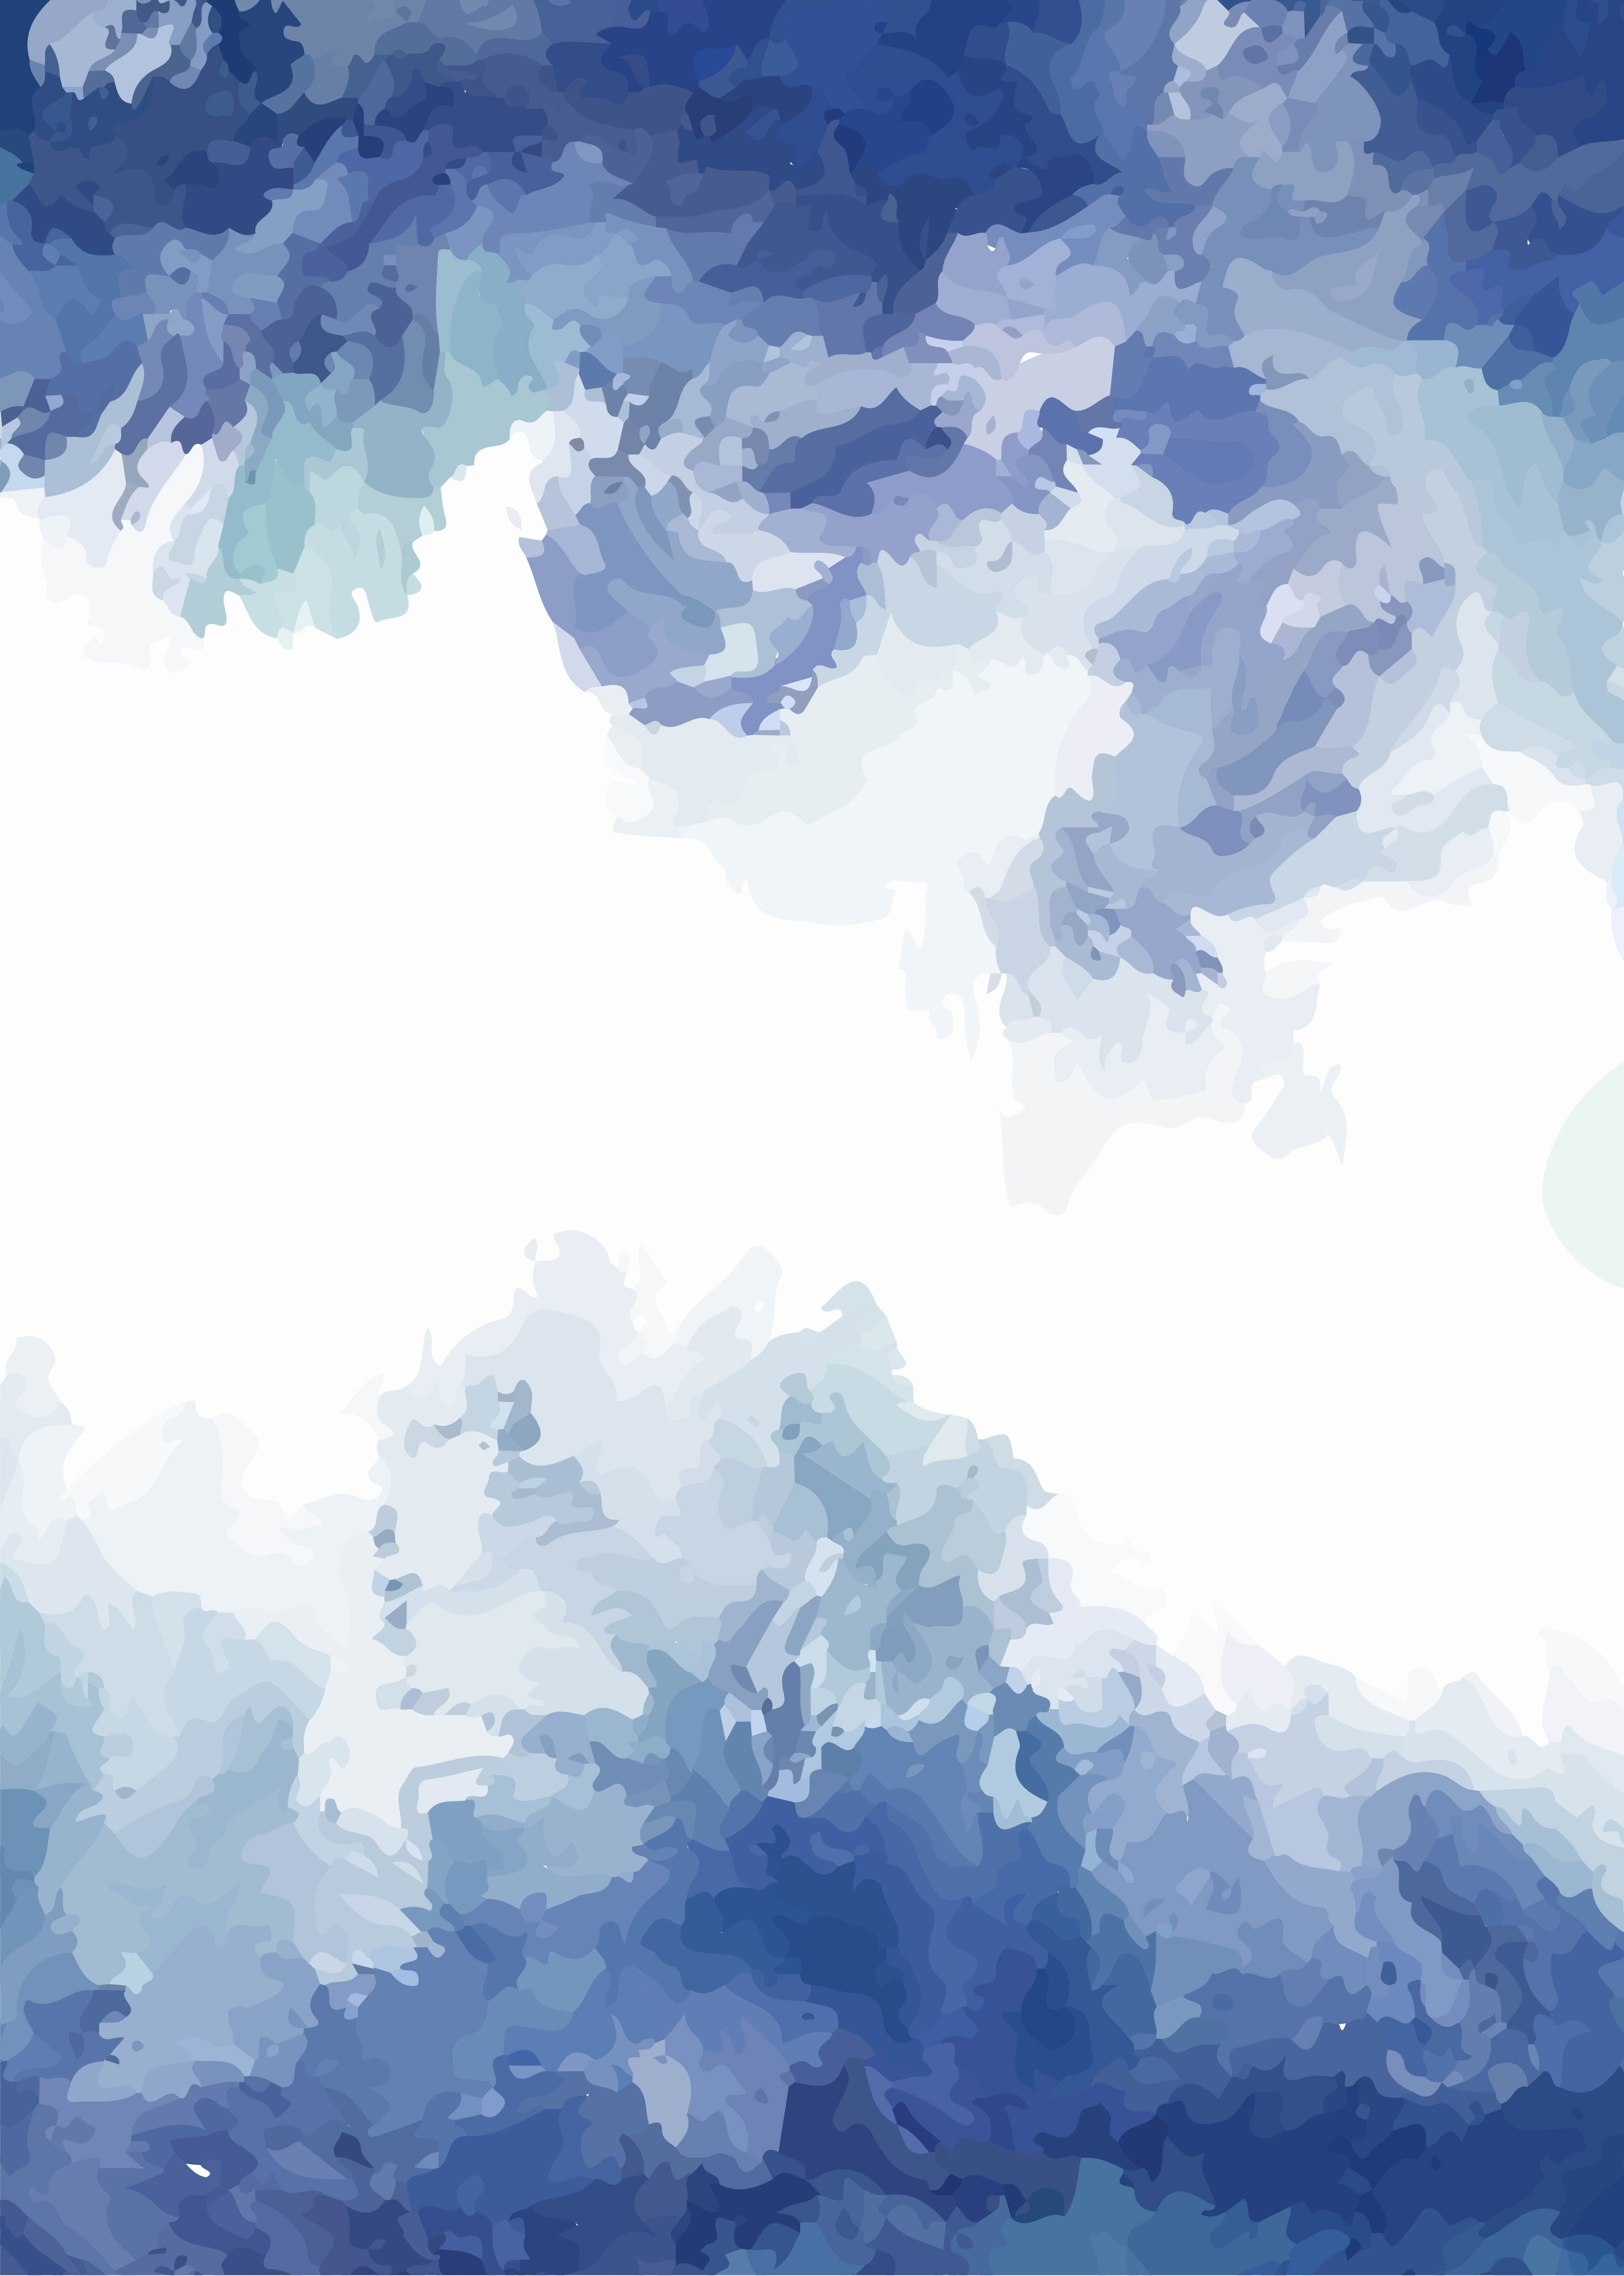 Watercolor Draw Ice Wallpaper Background